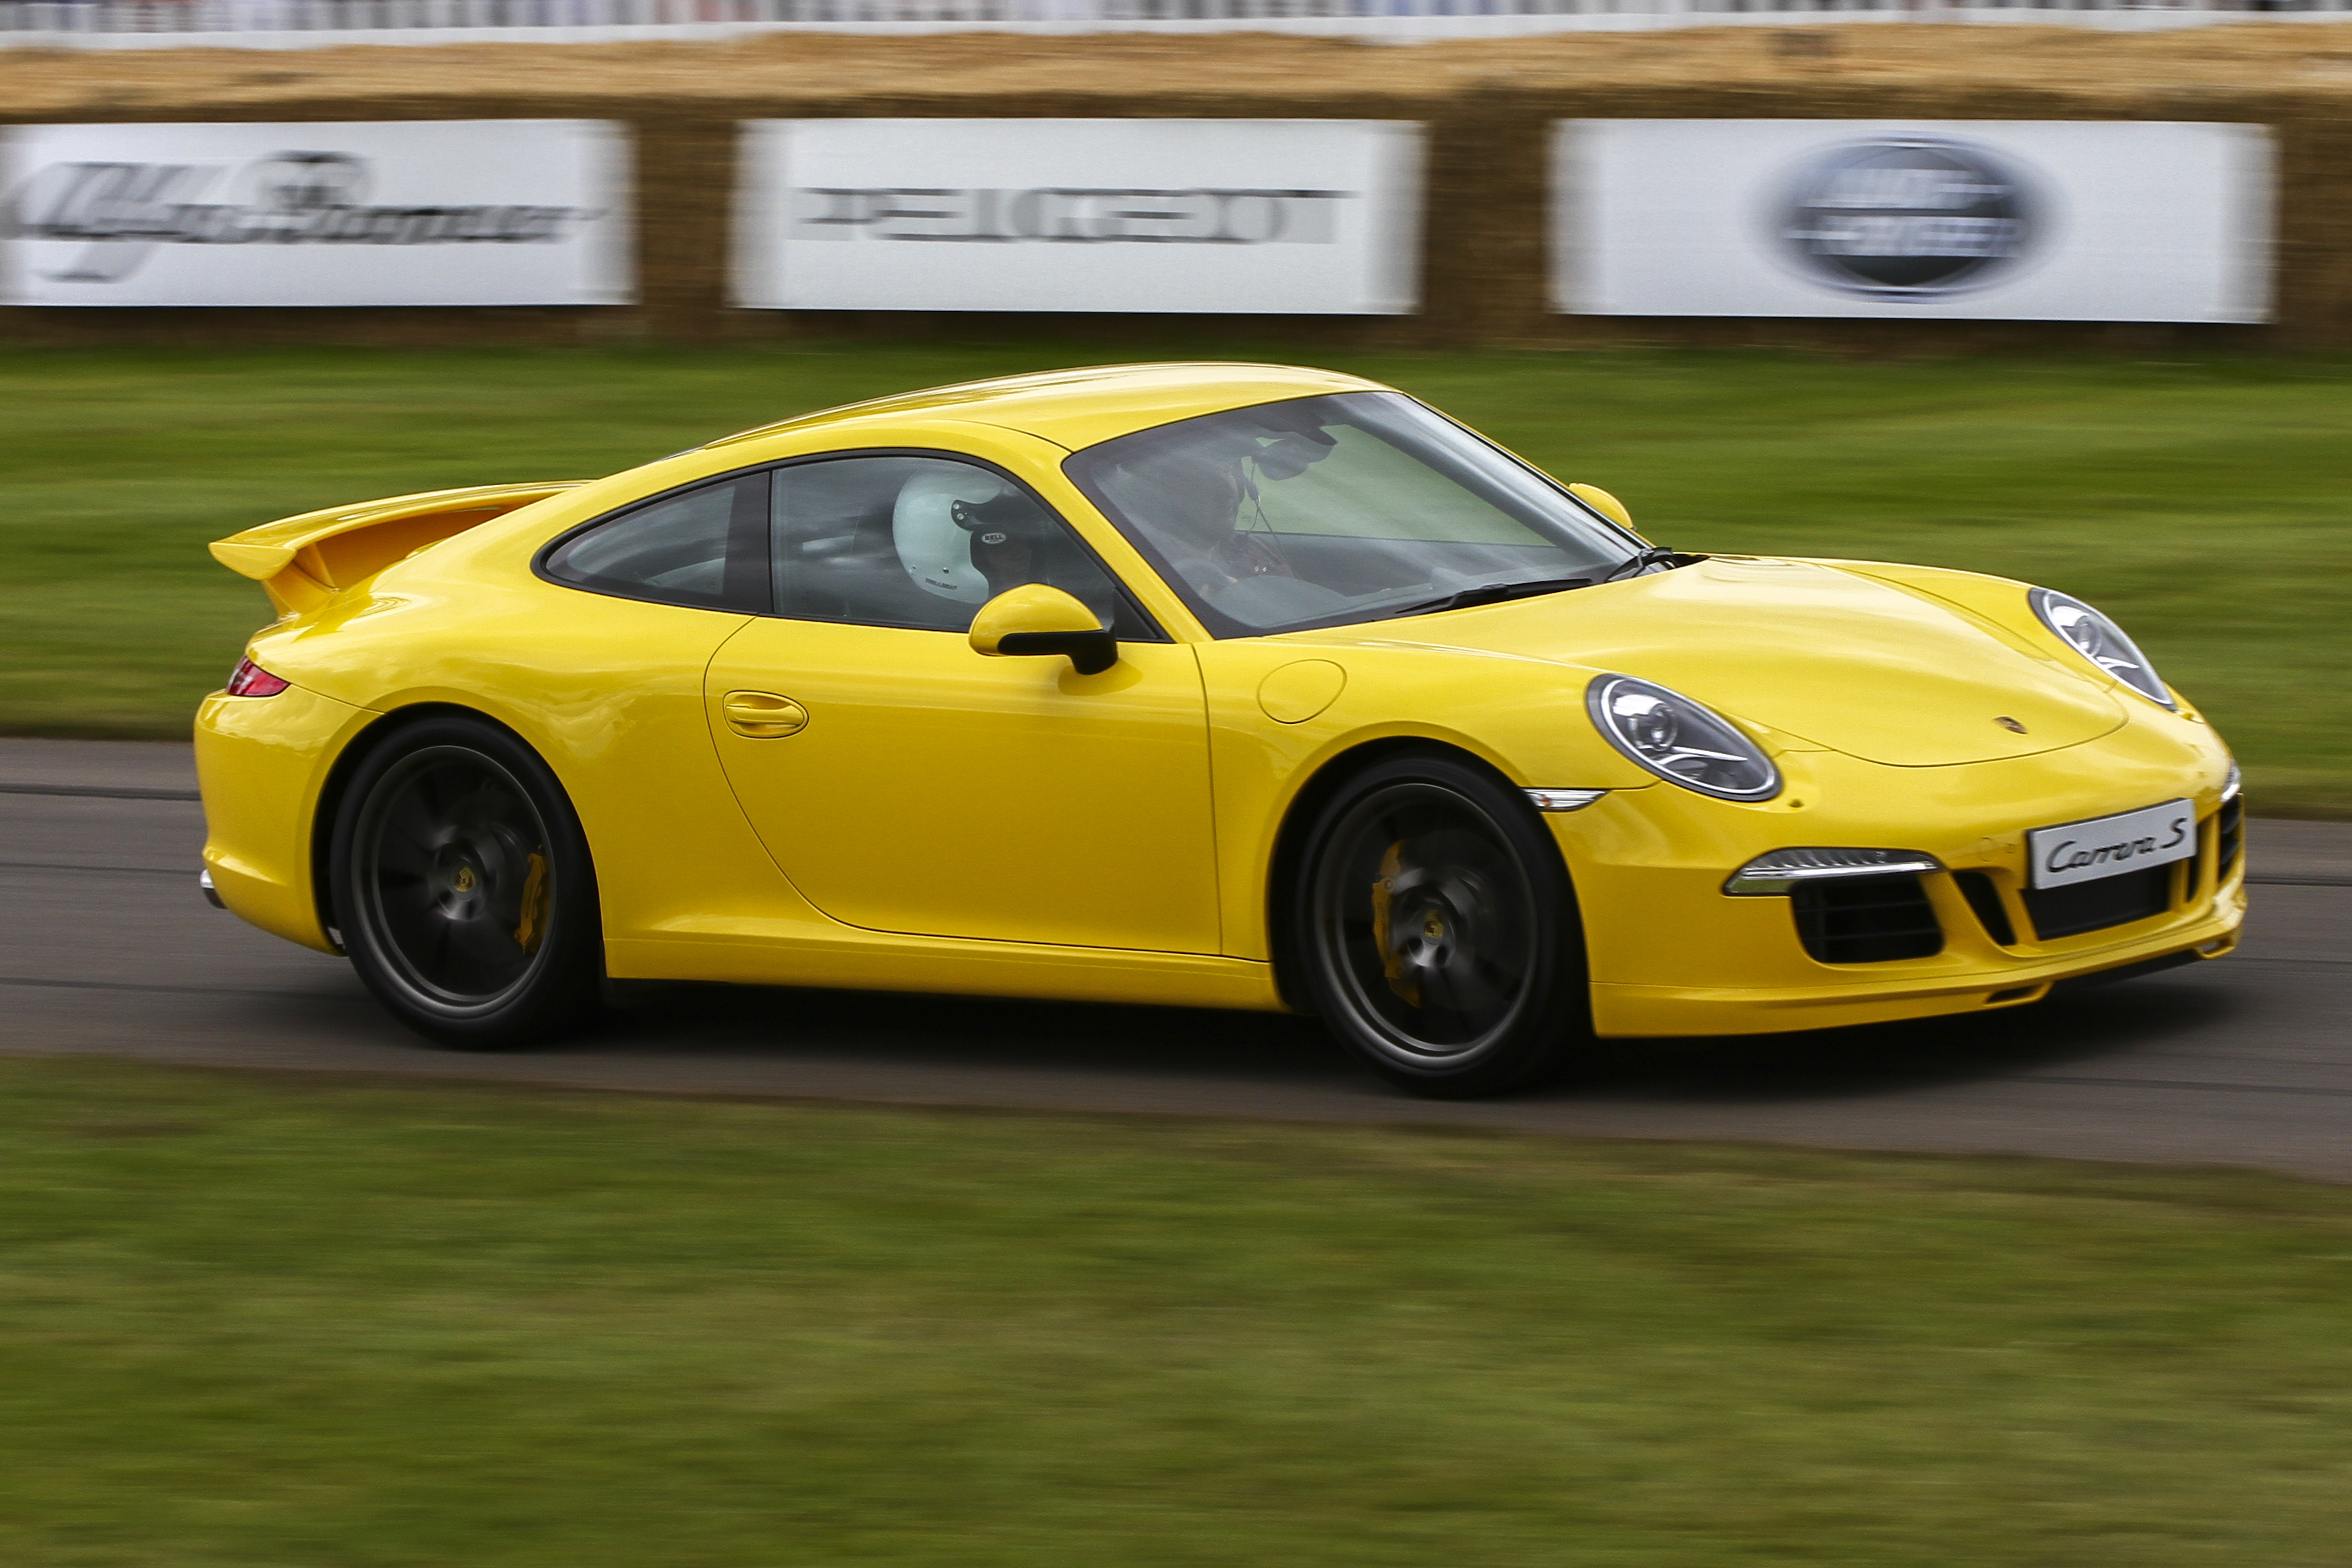 File991 Carrera S coupe Porsche Exclusive Goodwood FoS 2012jpg